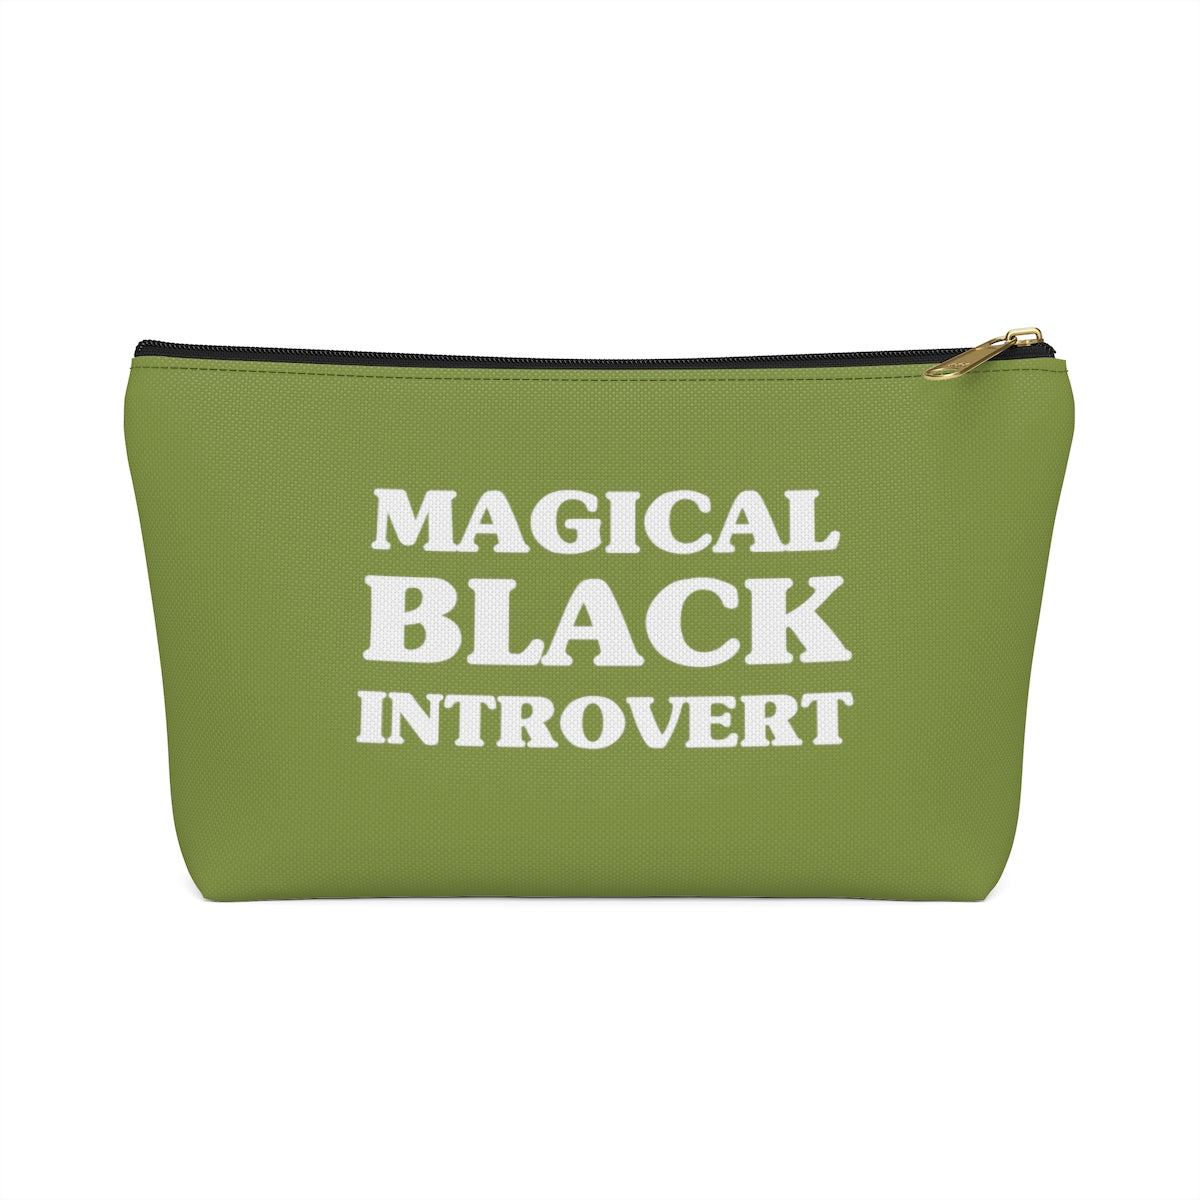 Magical Black Introvert Olive Green Accessory Pouch w T-bottom